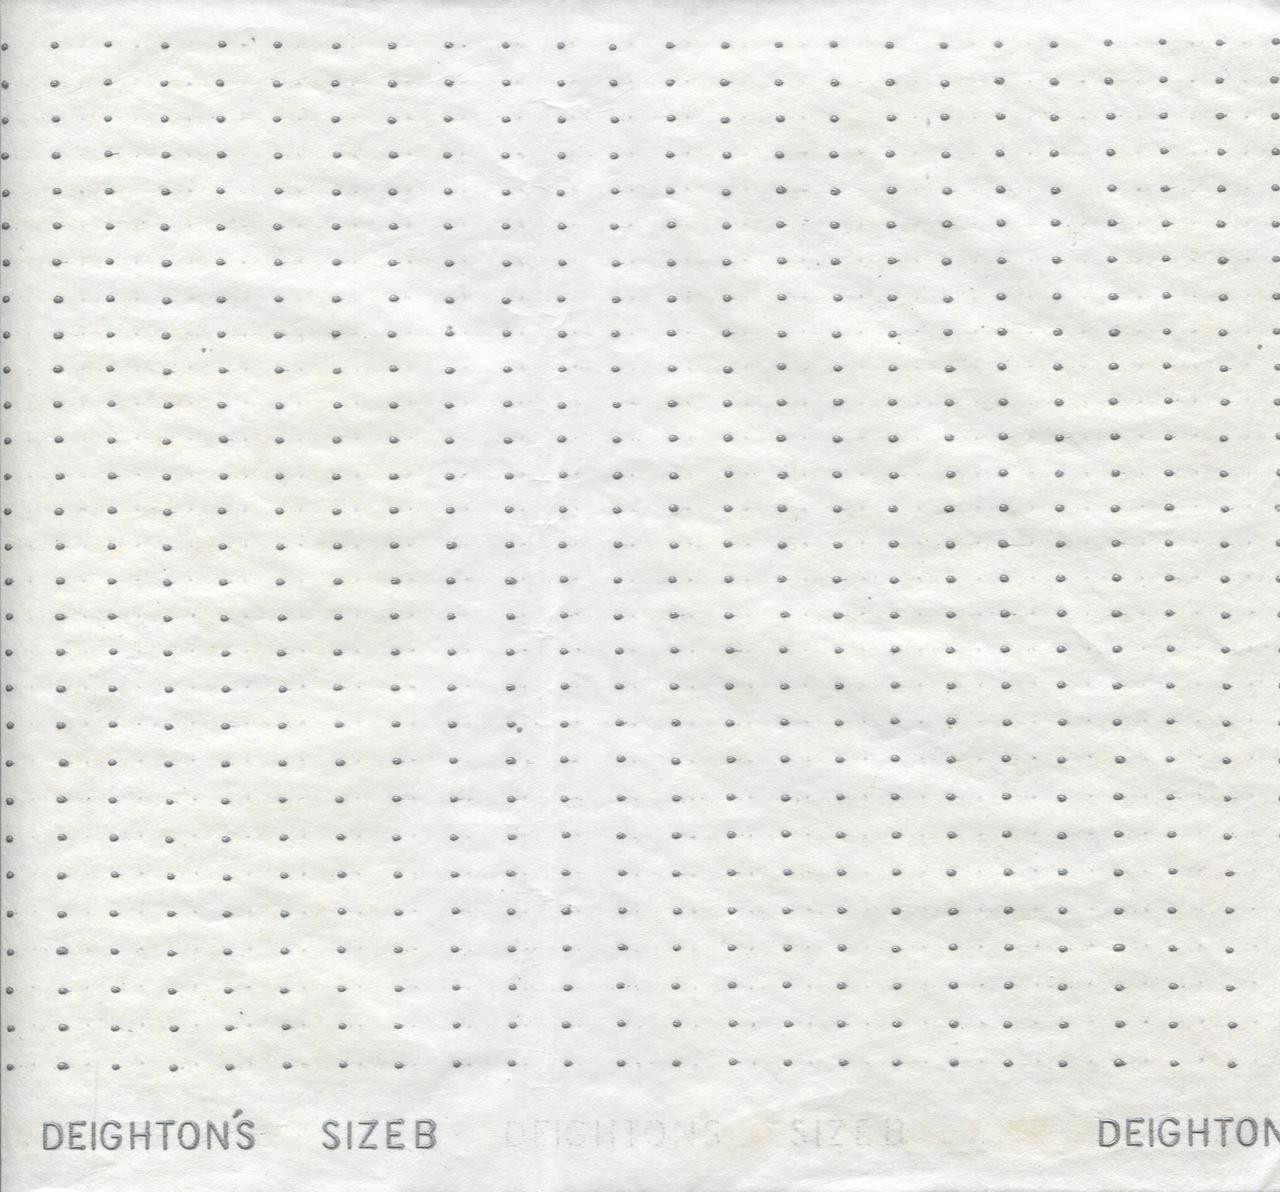 Smocking Transfer Dots - Size 'B' 9.5 mm x 6.5 mm - see video on how to use  - one sheet in each pack